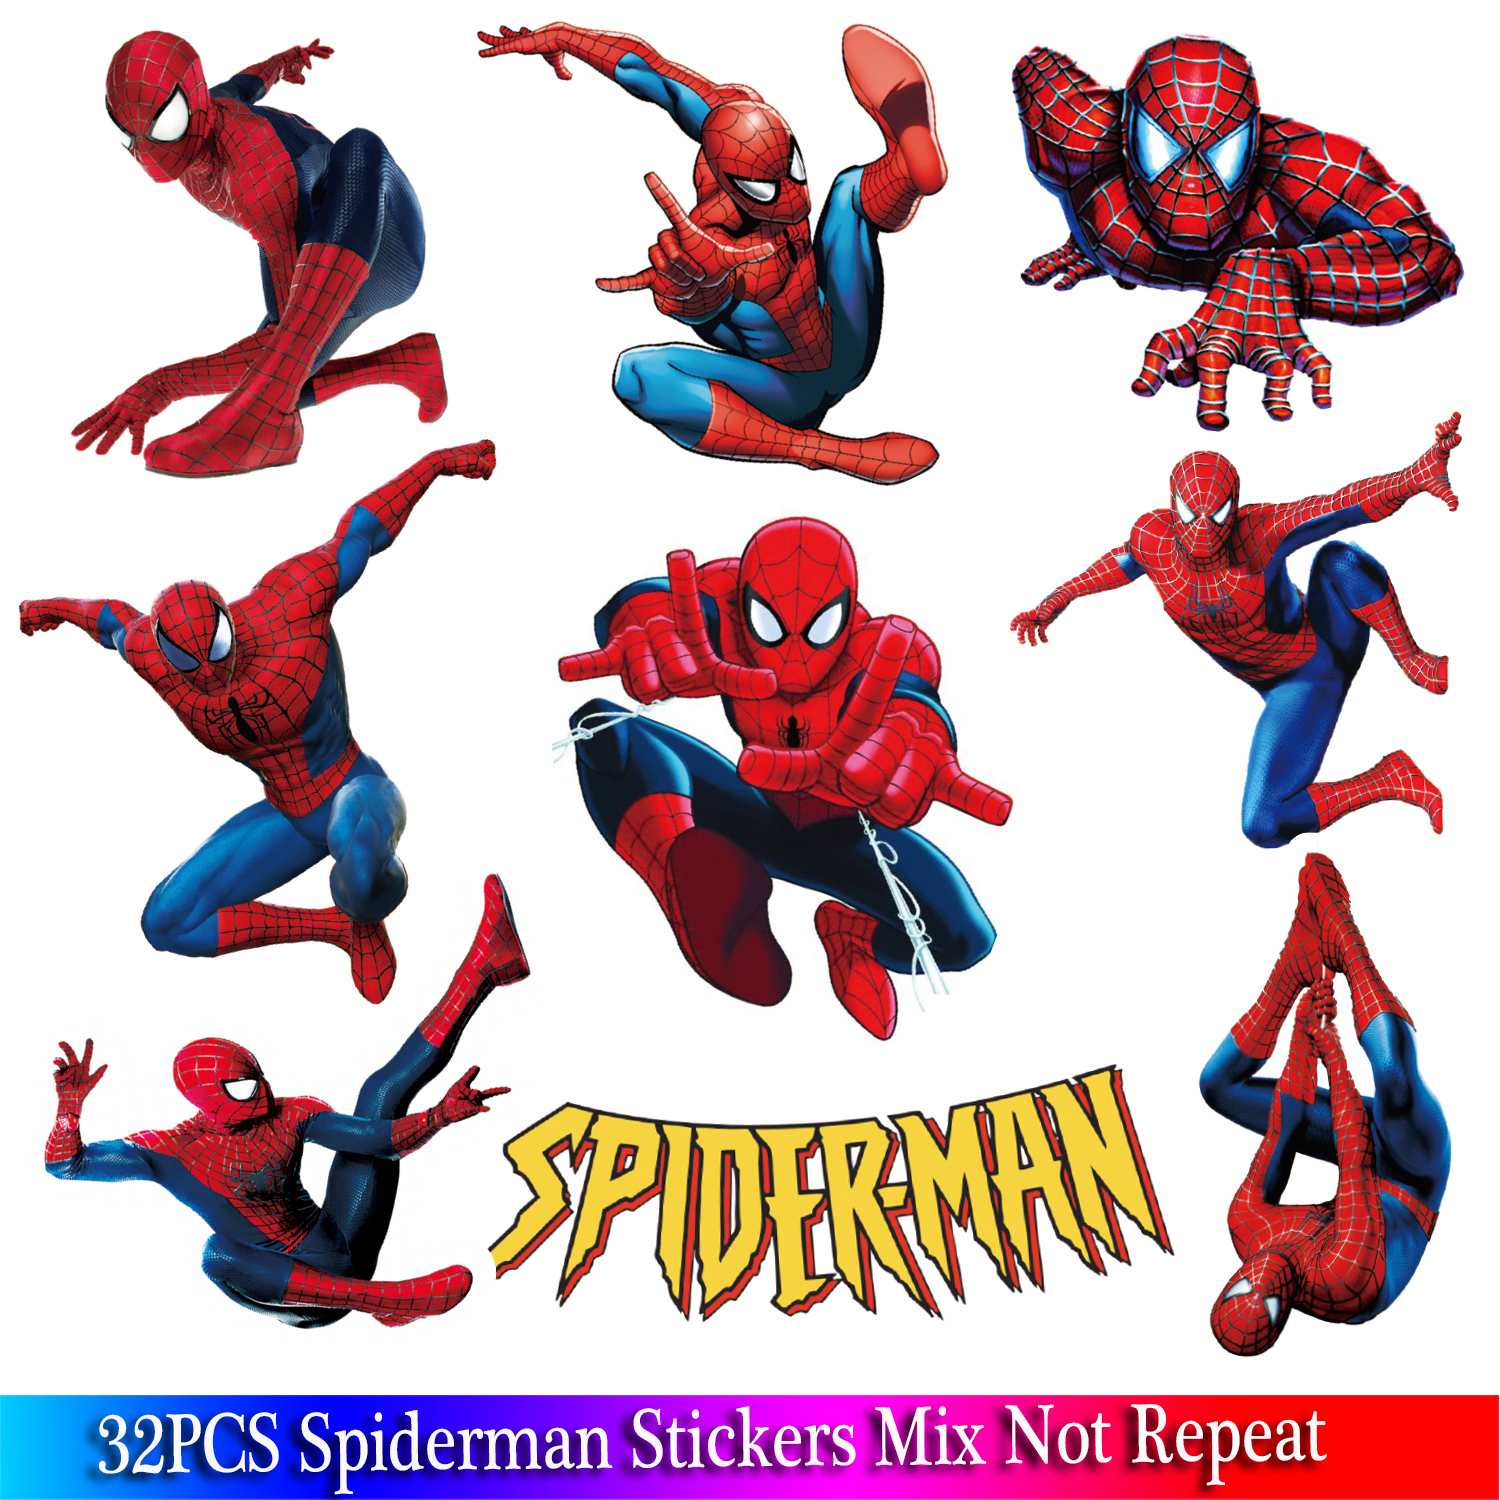 32PCS Spiderman Stickers Pack Marvel Super Hero Stickers For Laptop Fridge Bicycle Phone Guitar Cartoon Anime Sticker